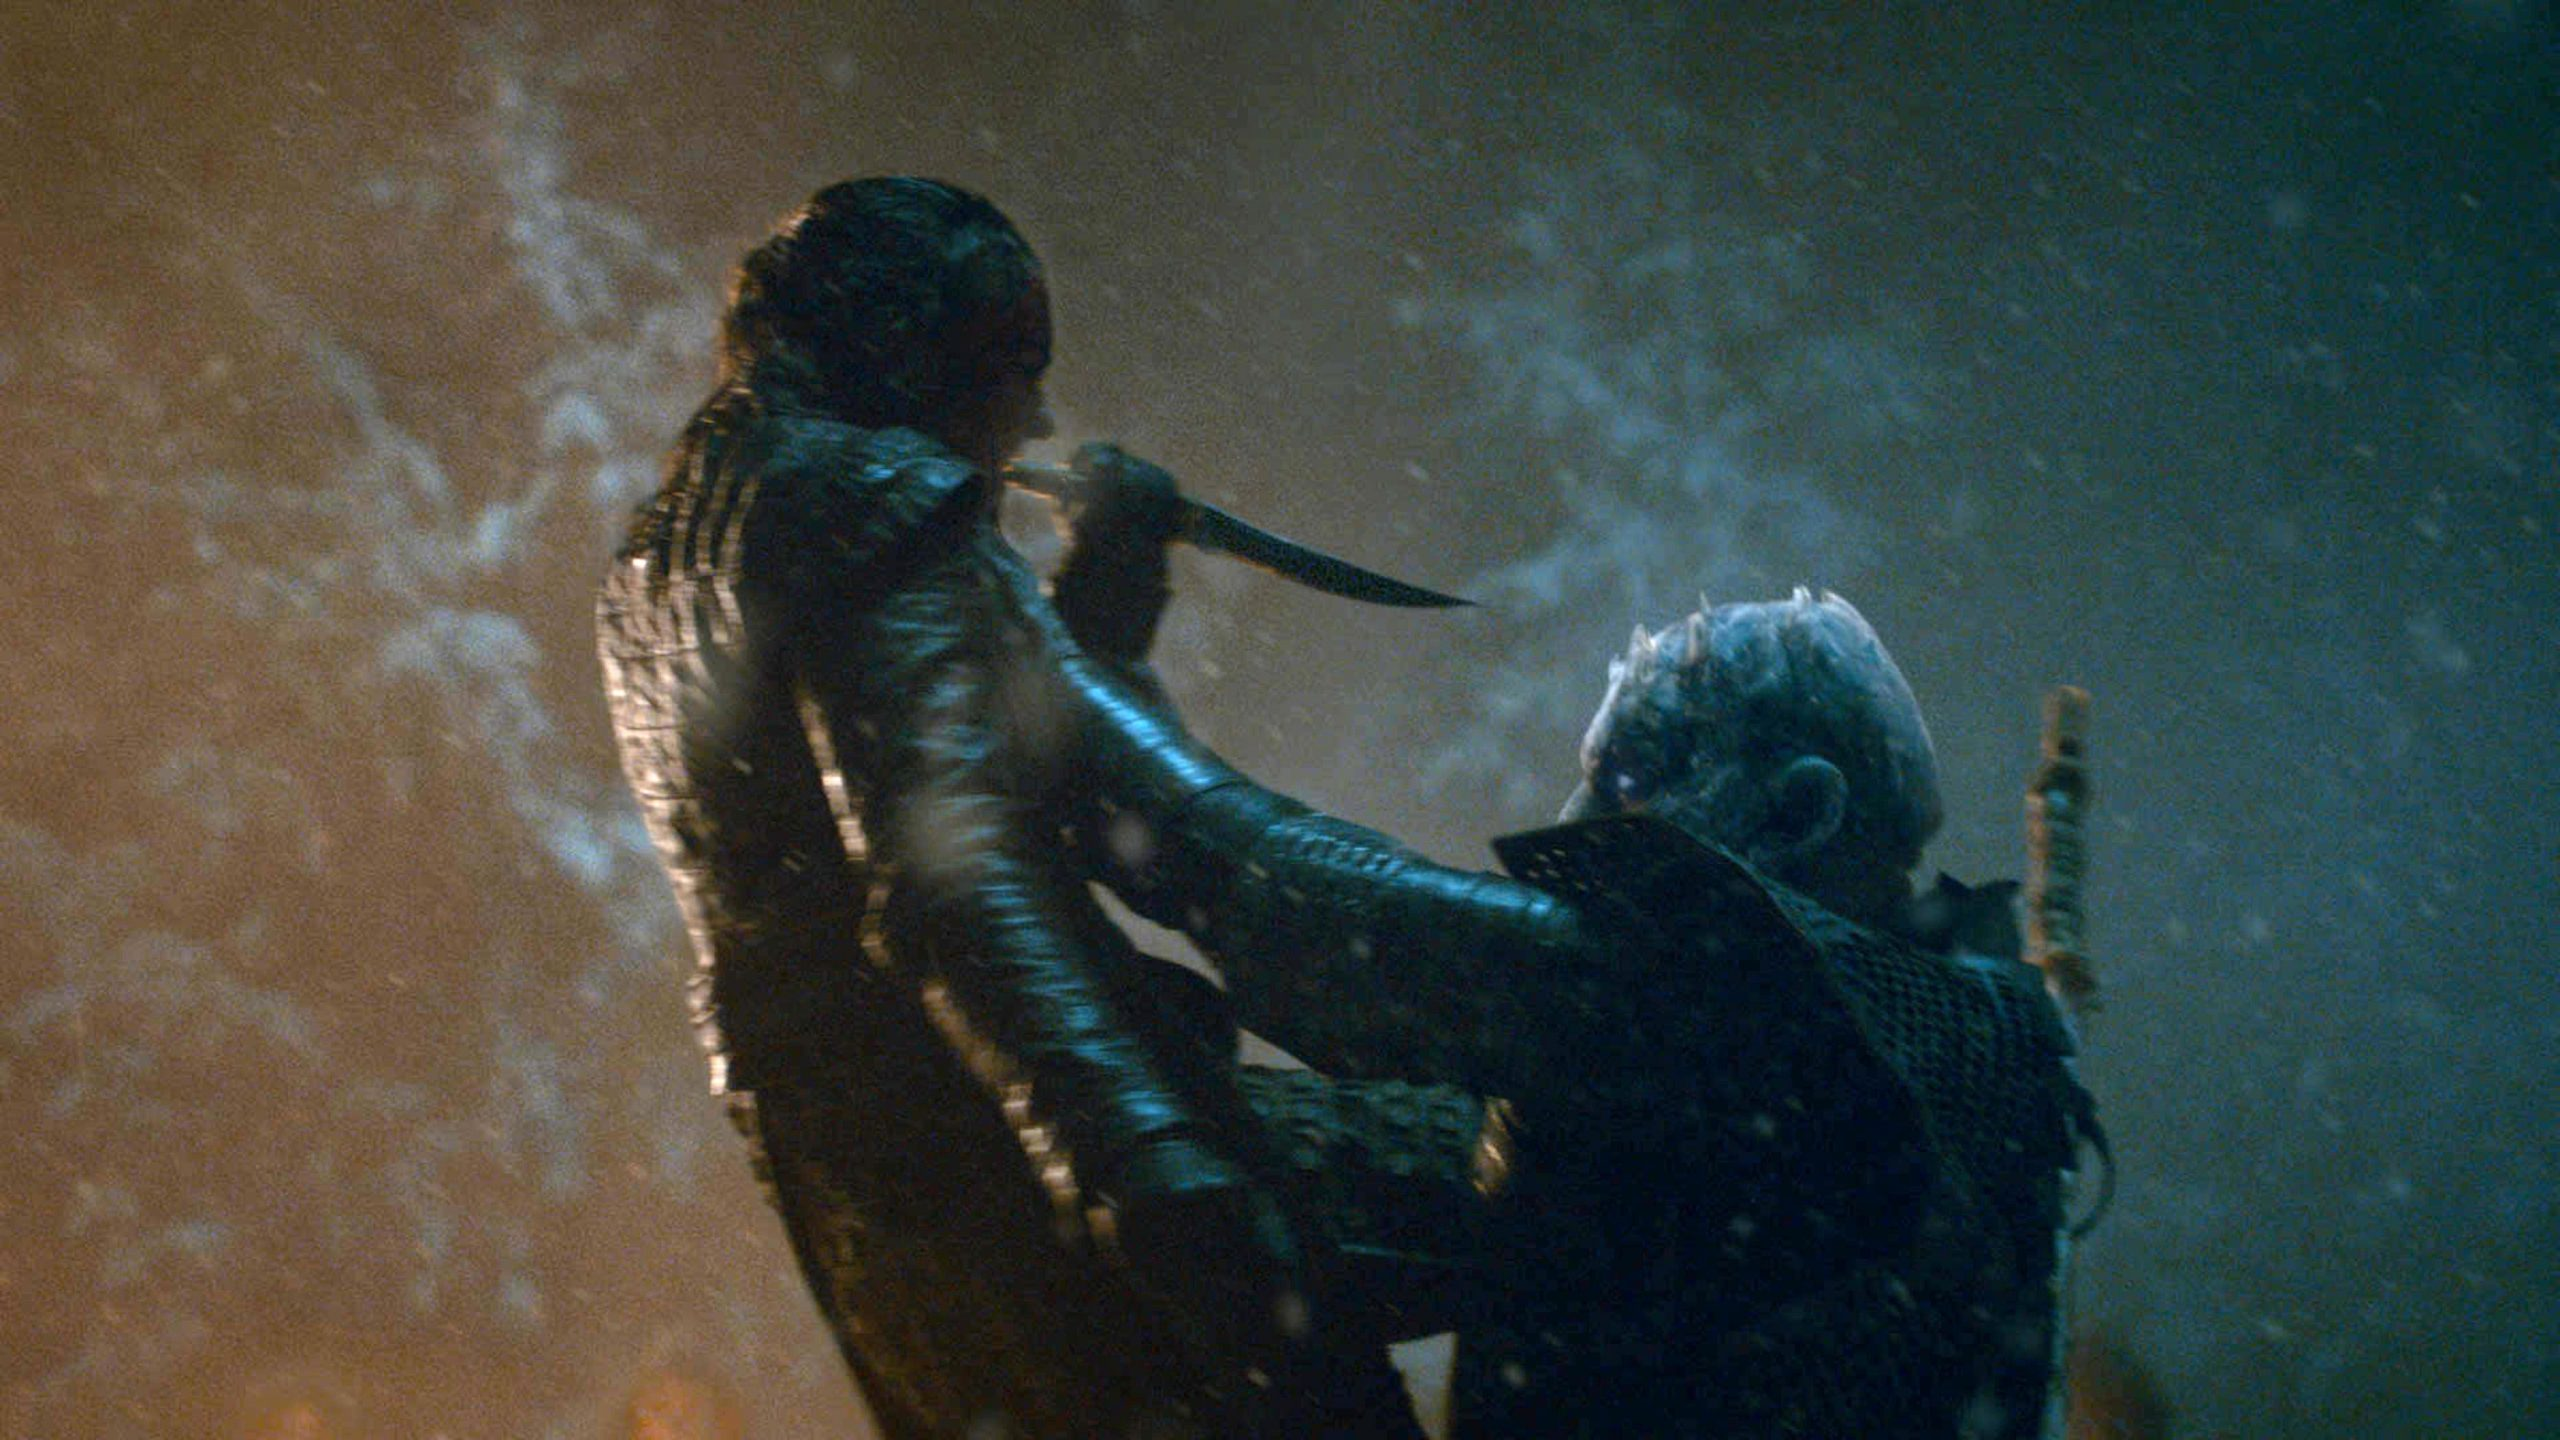 Night King killed by Arya Stark